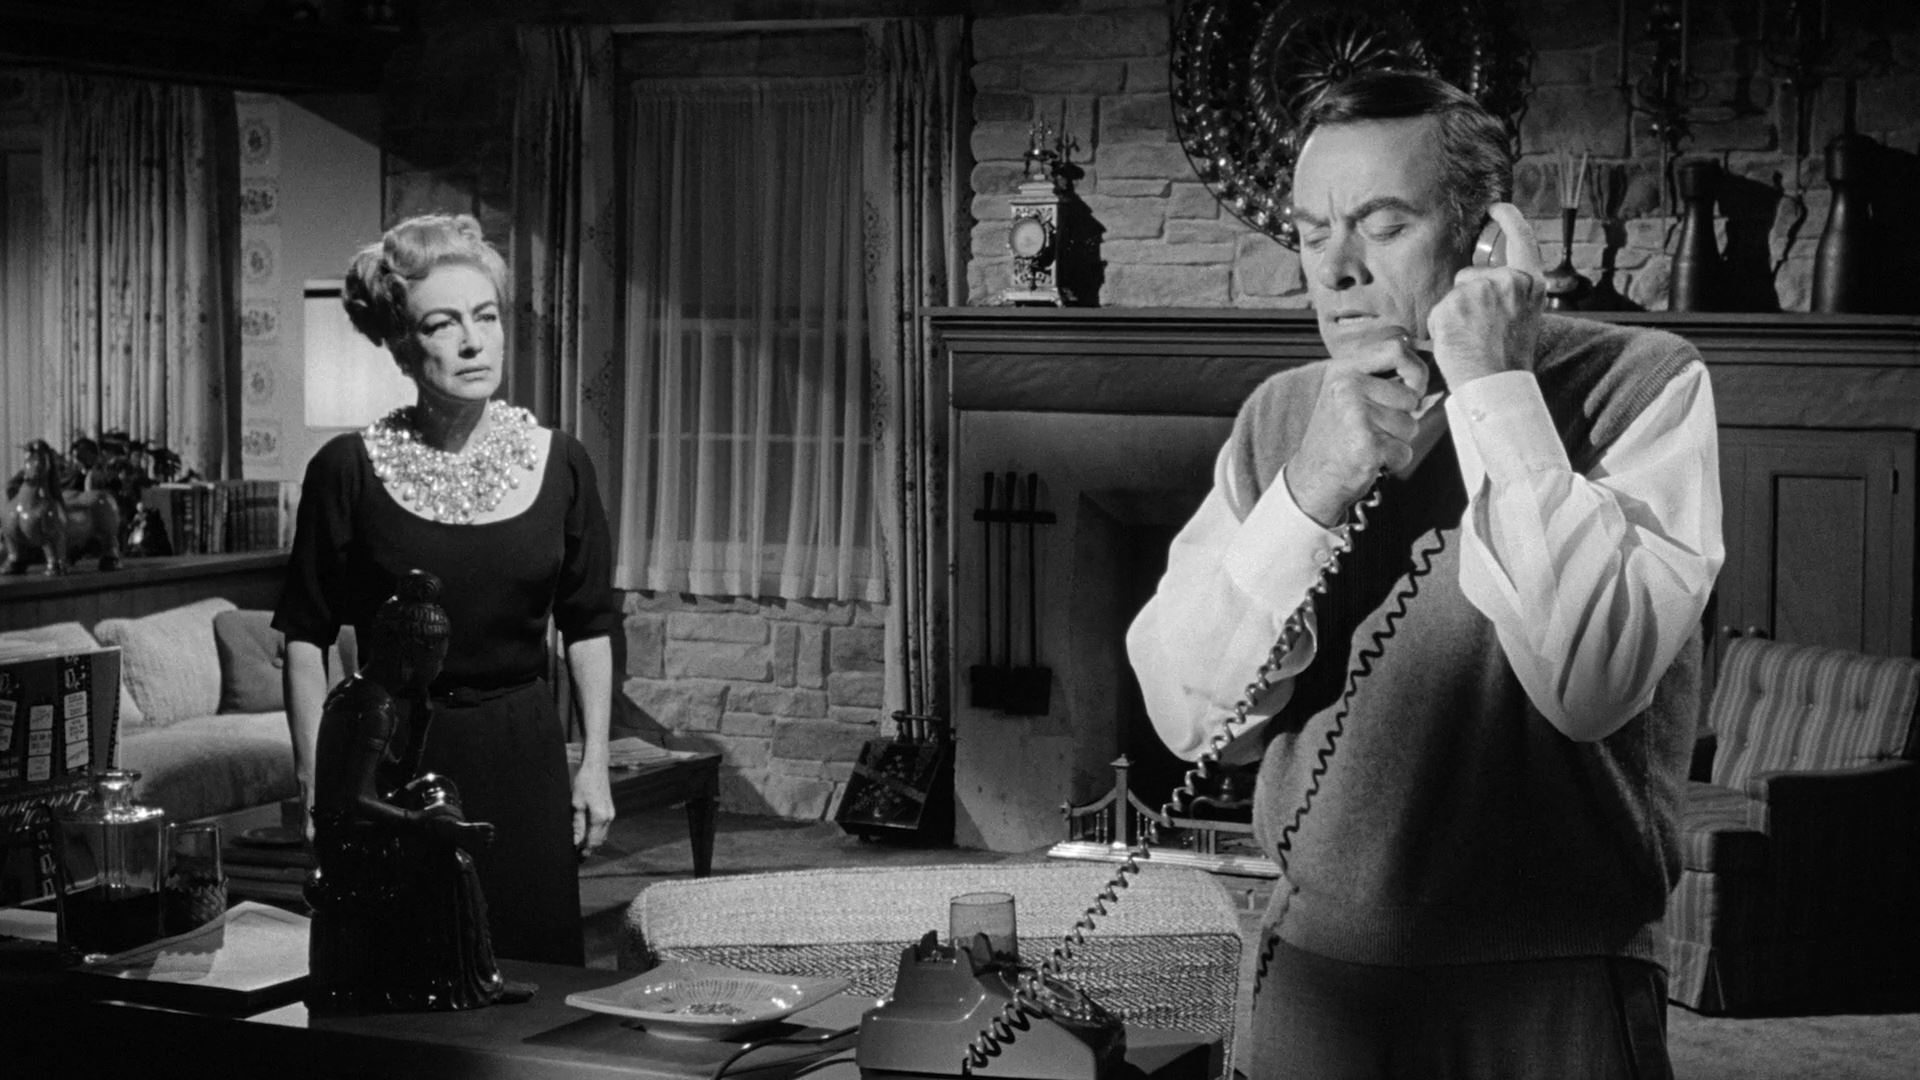 On thr receiving end of the prank call - John Ireland with mistress Joan Crawford in the background in I Saw What You Did (1965)